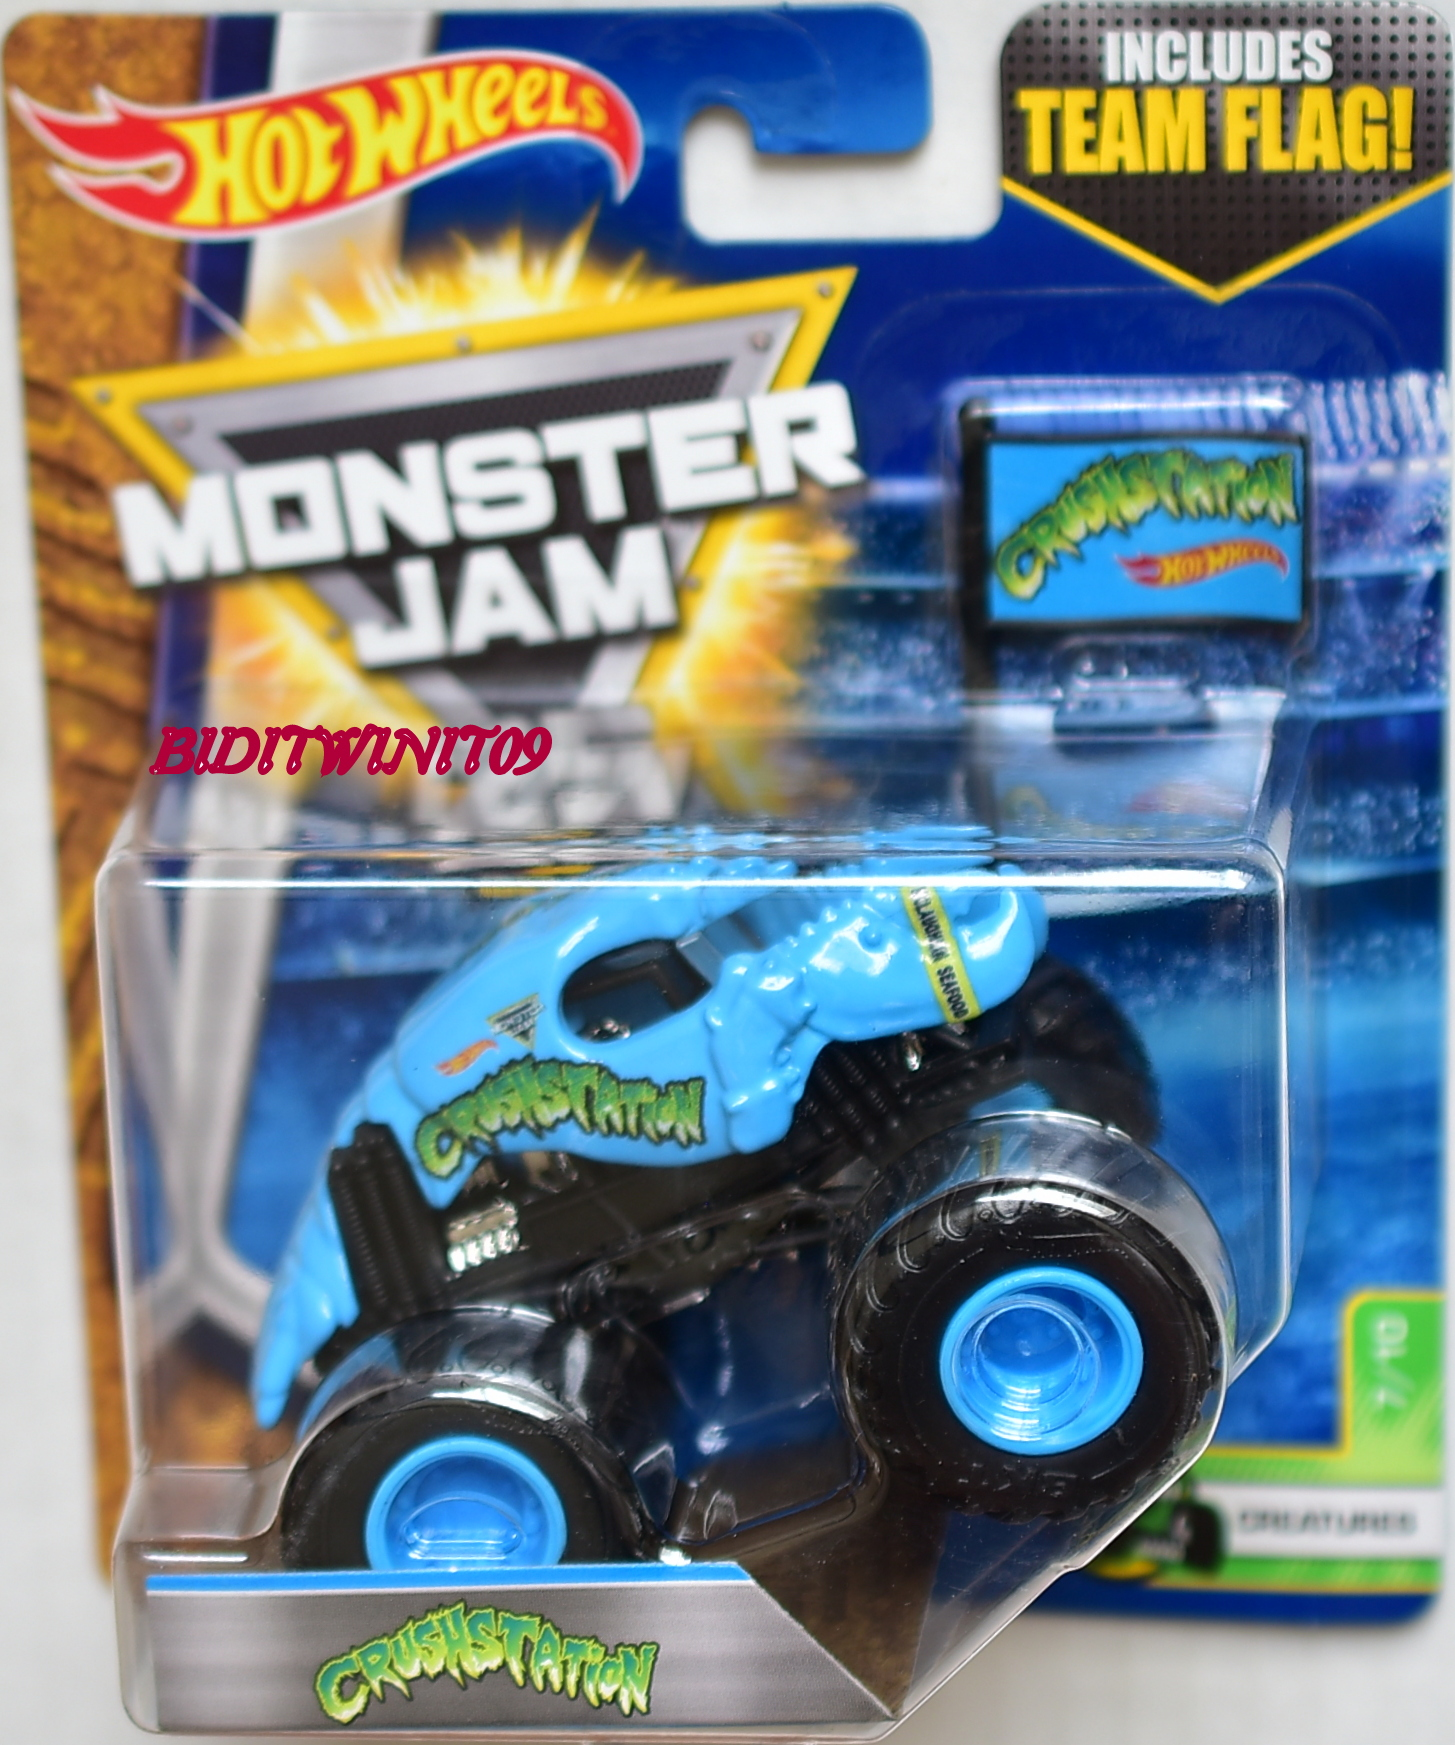 HOT WHEELS 2017 MONSTER JAM INCLUDES TEAM FLAG CRUSHSTATION - CREATURES